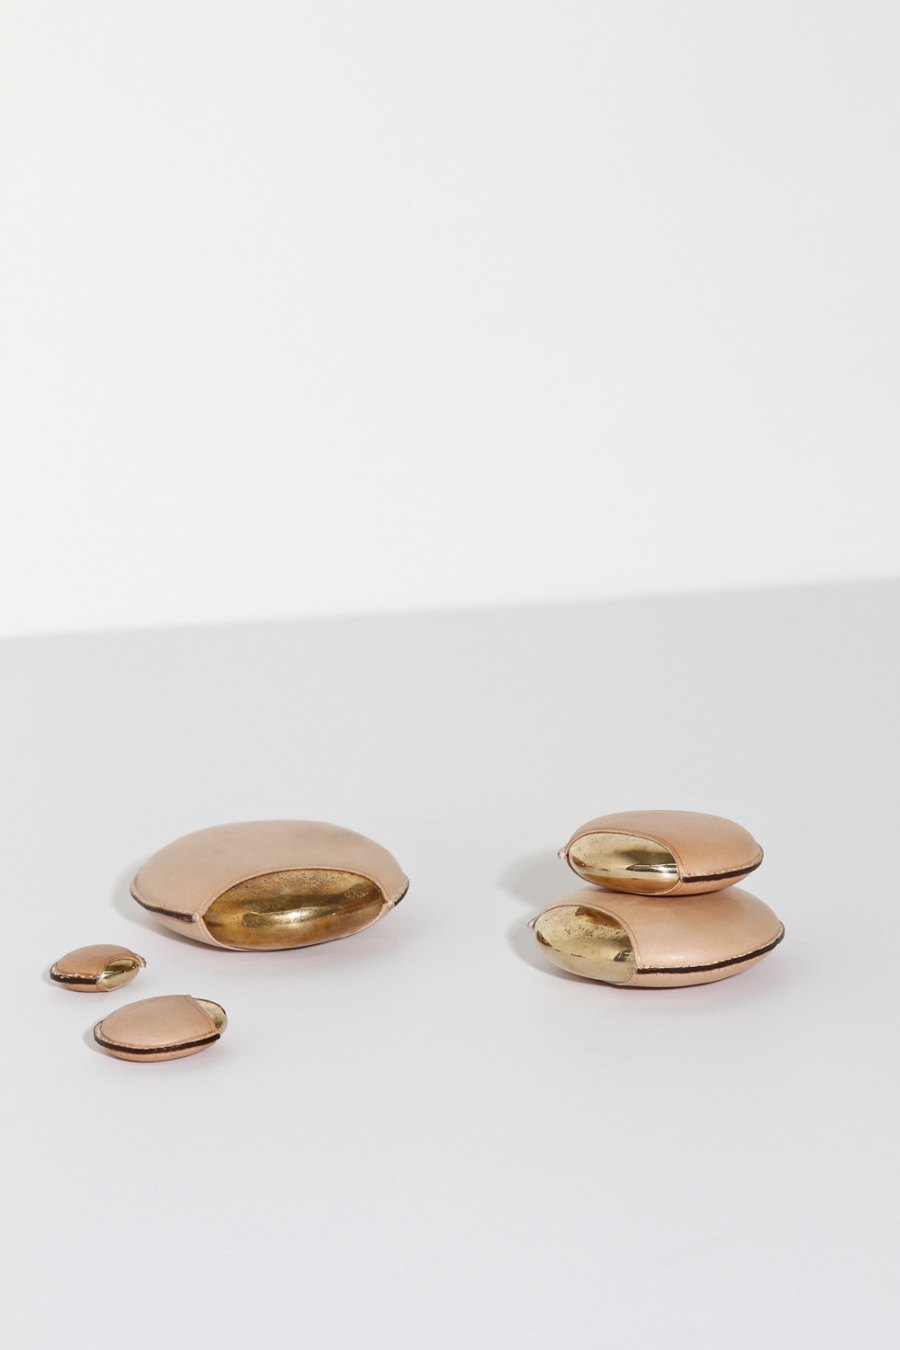 Bronze and leather objects from Table of Contents Studio